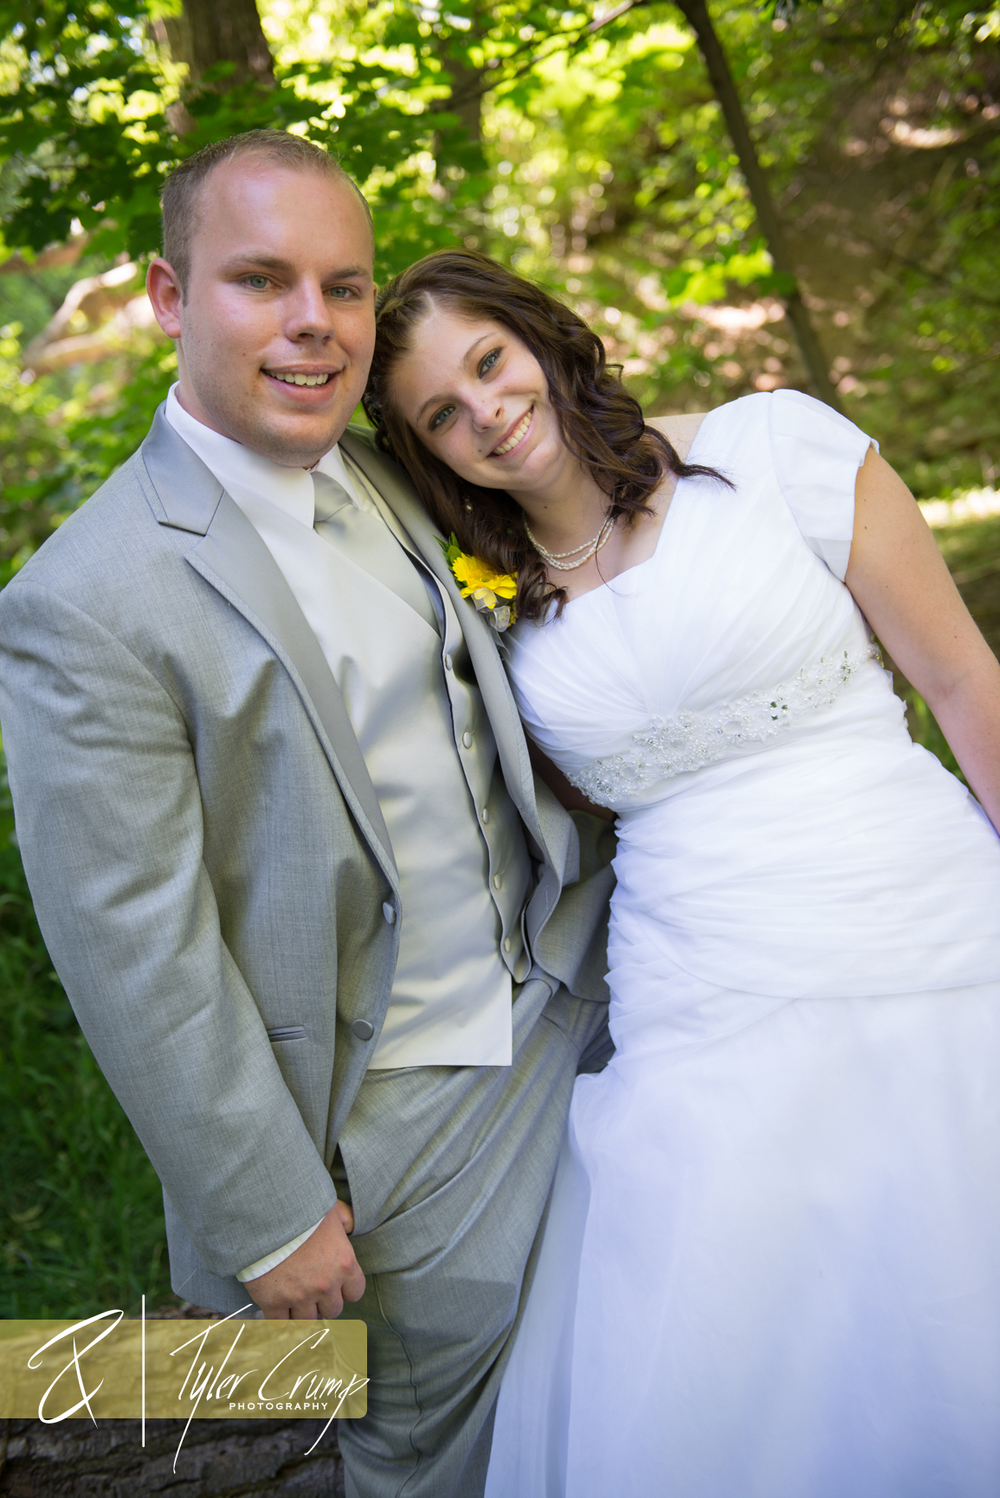 Tiffany & Andy Wedding Day-8.jpg